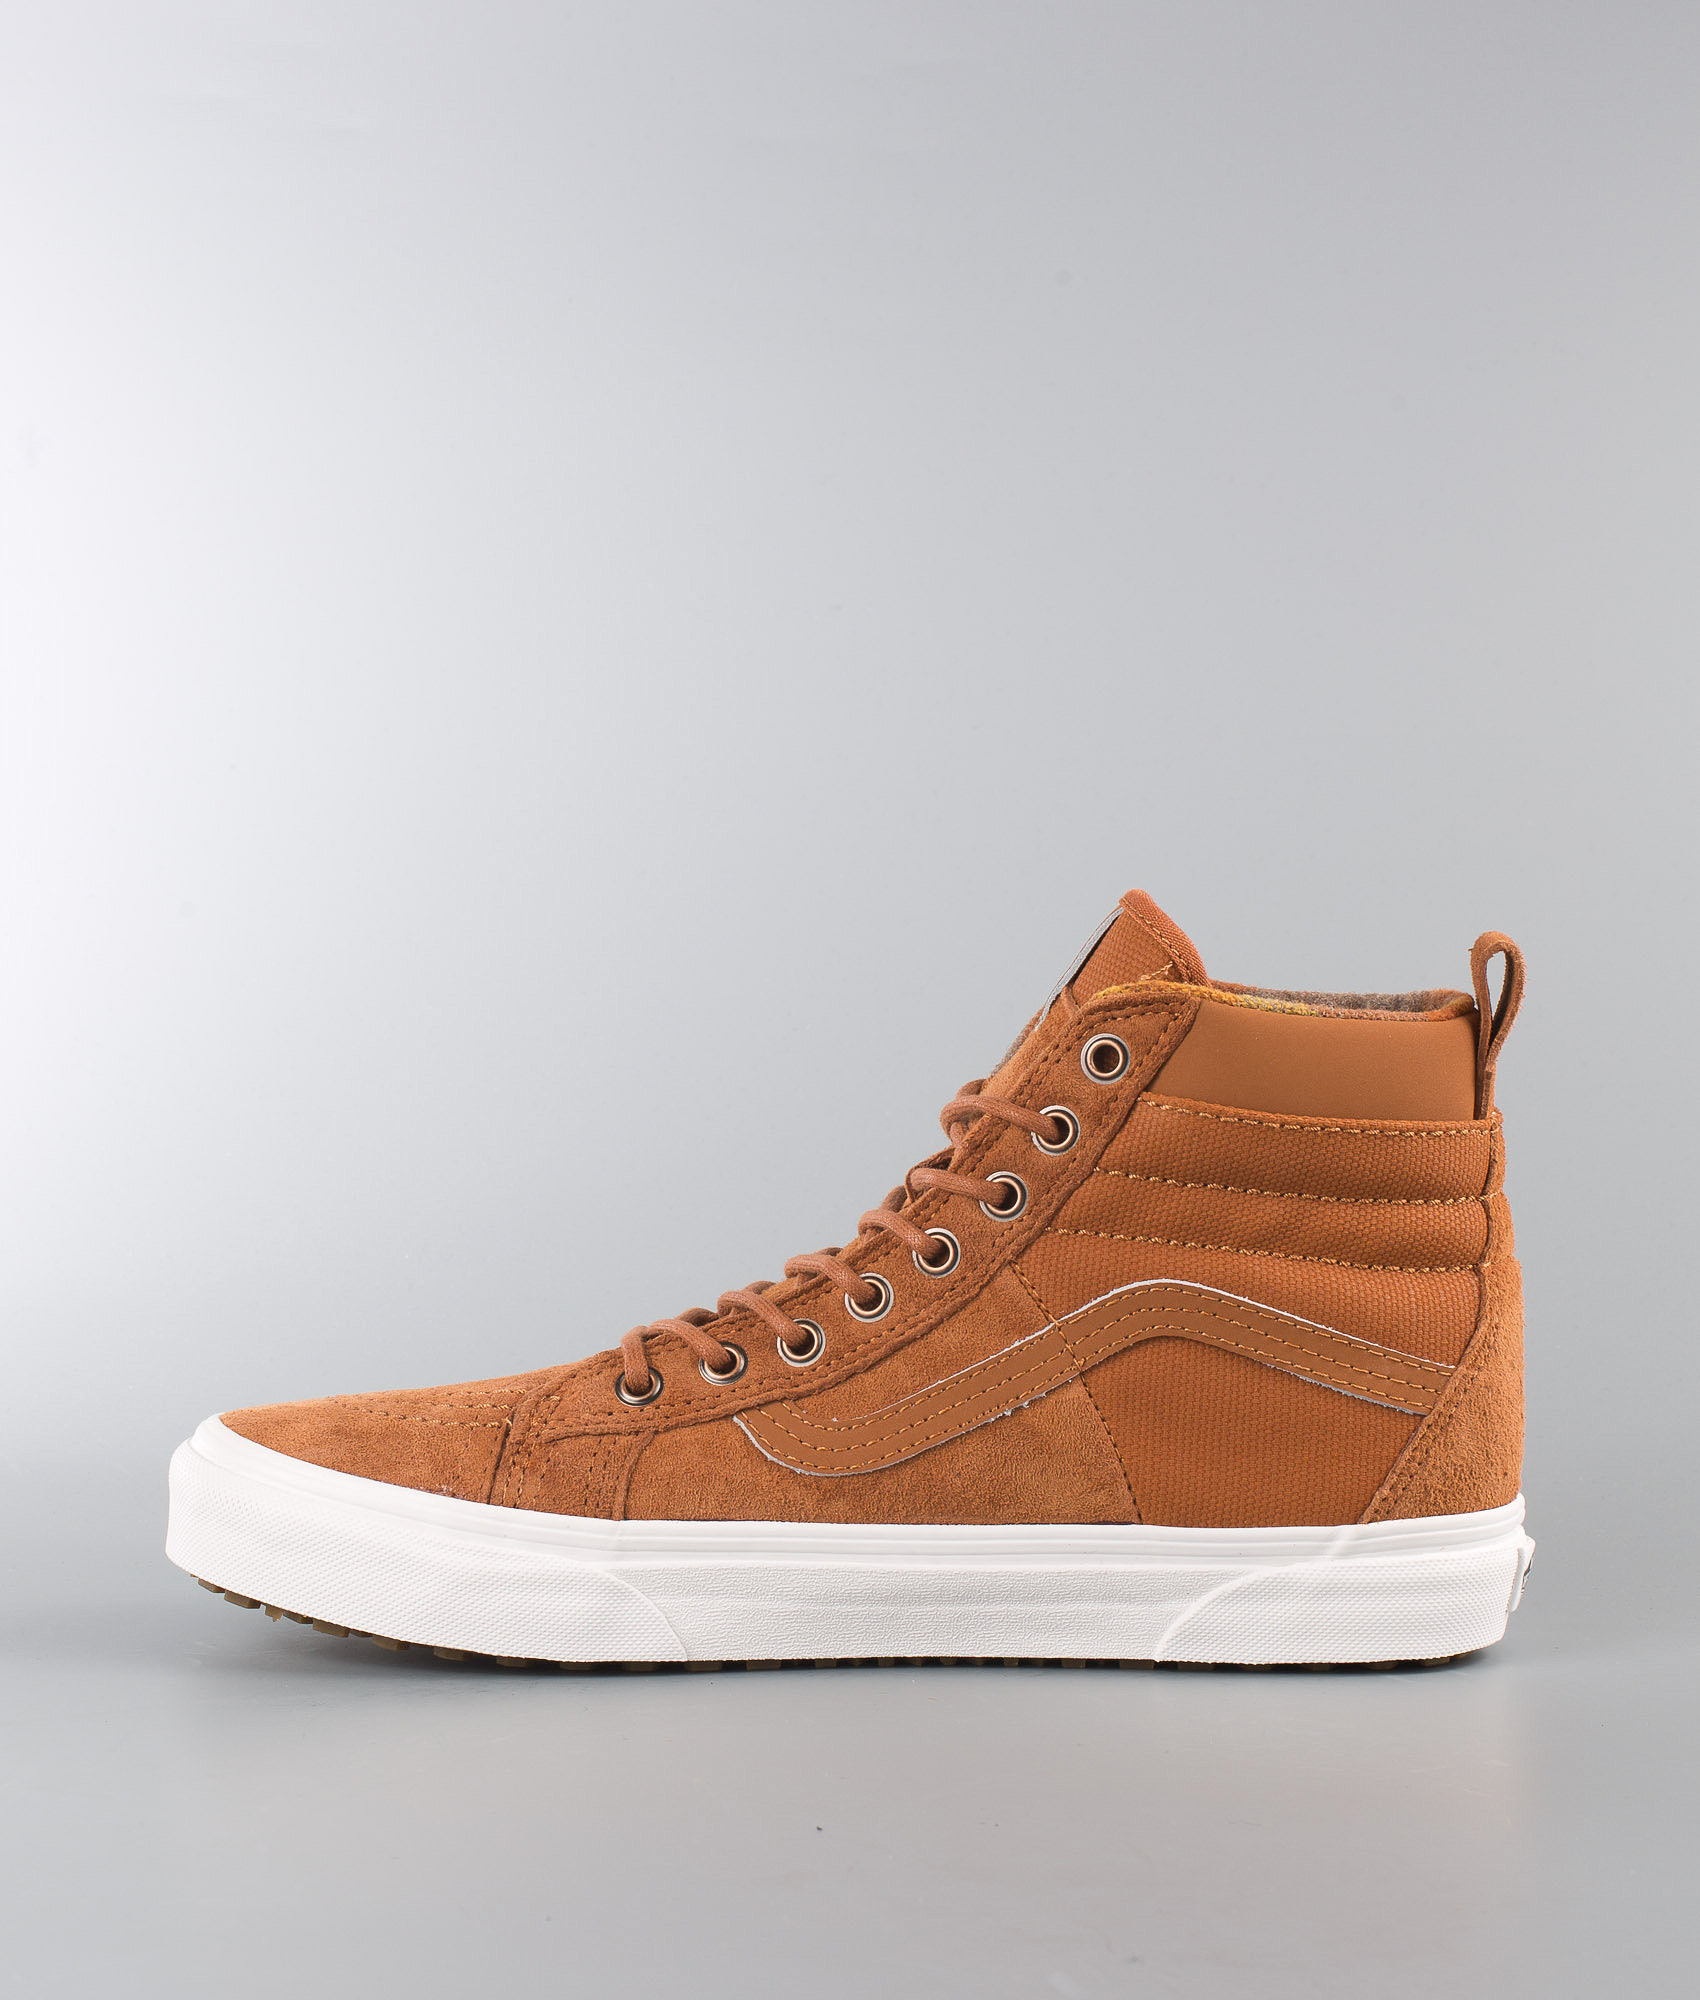 1bb8ed0b784 Vans Sk8-Hi 46 Mte Dx Shoes (Mte) Glazed Ginger Flannel - Ridestore.com